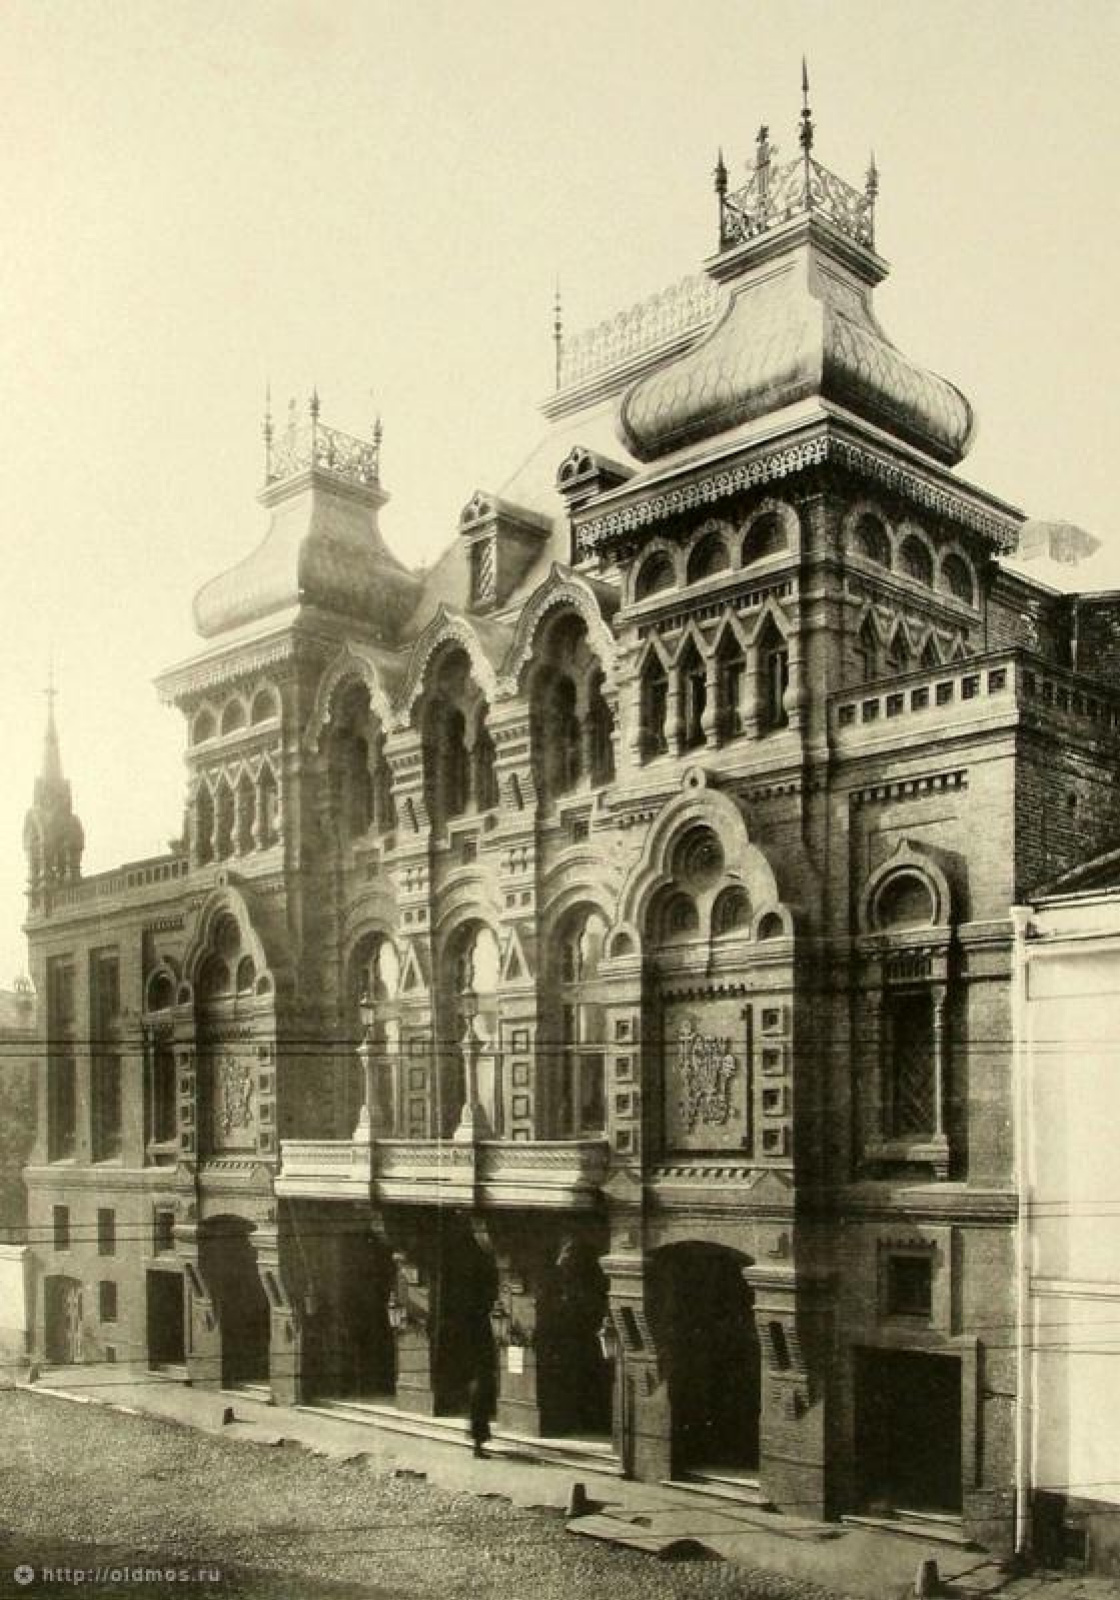 Paradise Theatre building. Architects Tersky, Shekhtel (theatre facade), 1885, Moscow. At present da